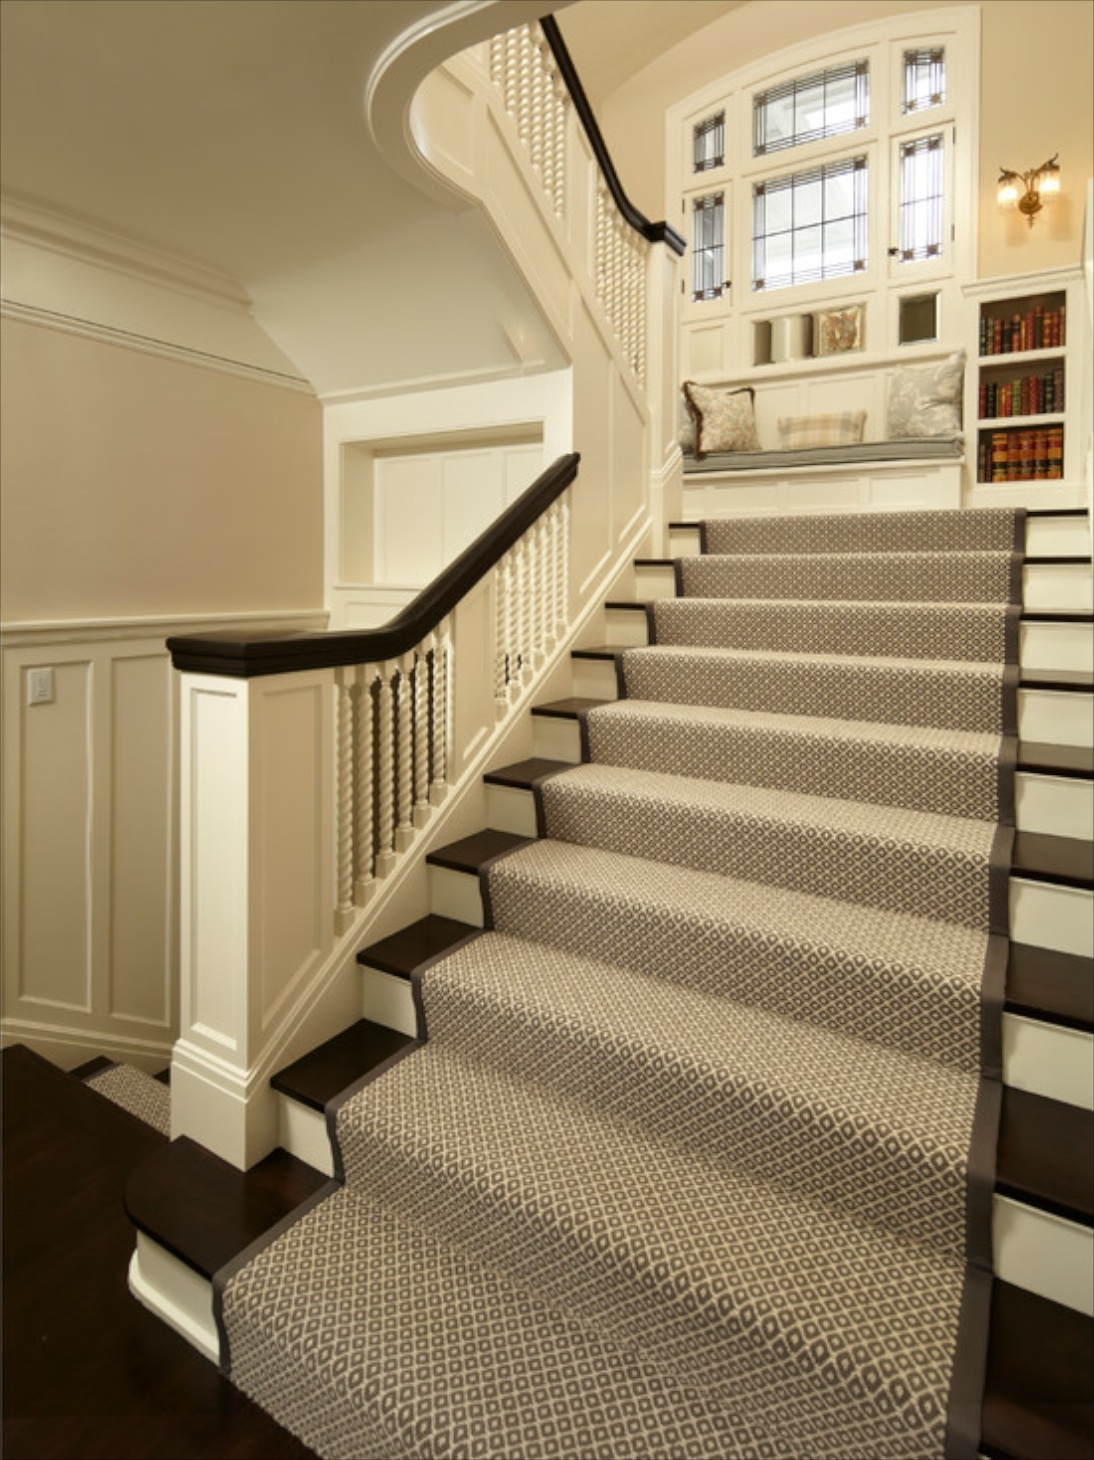 15 Best Stick On Carpet For Stairs Stair Tread Rugs Ideas